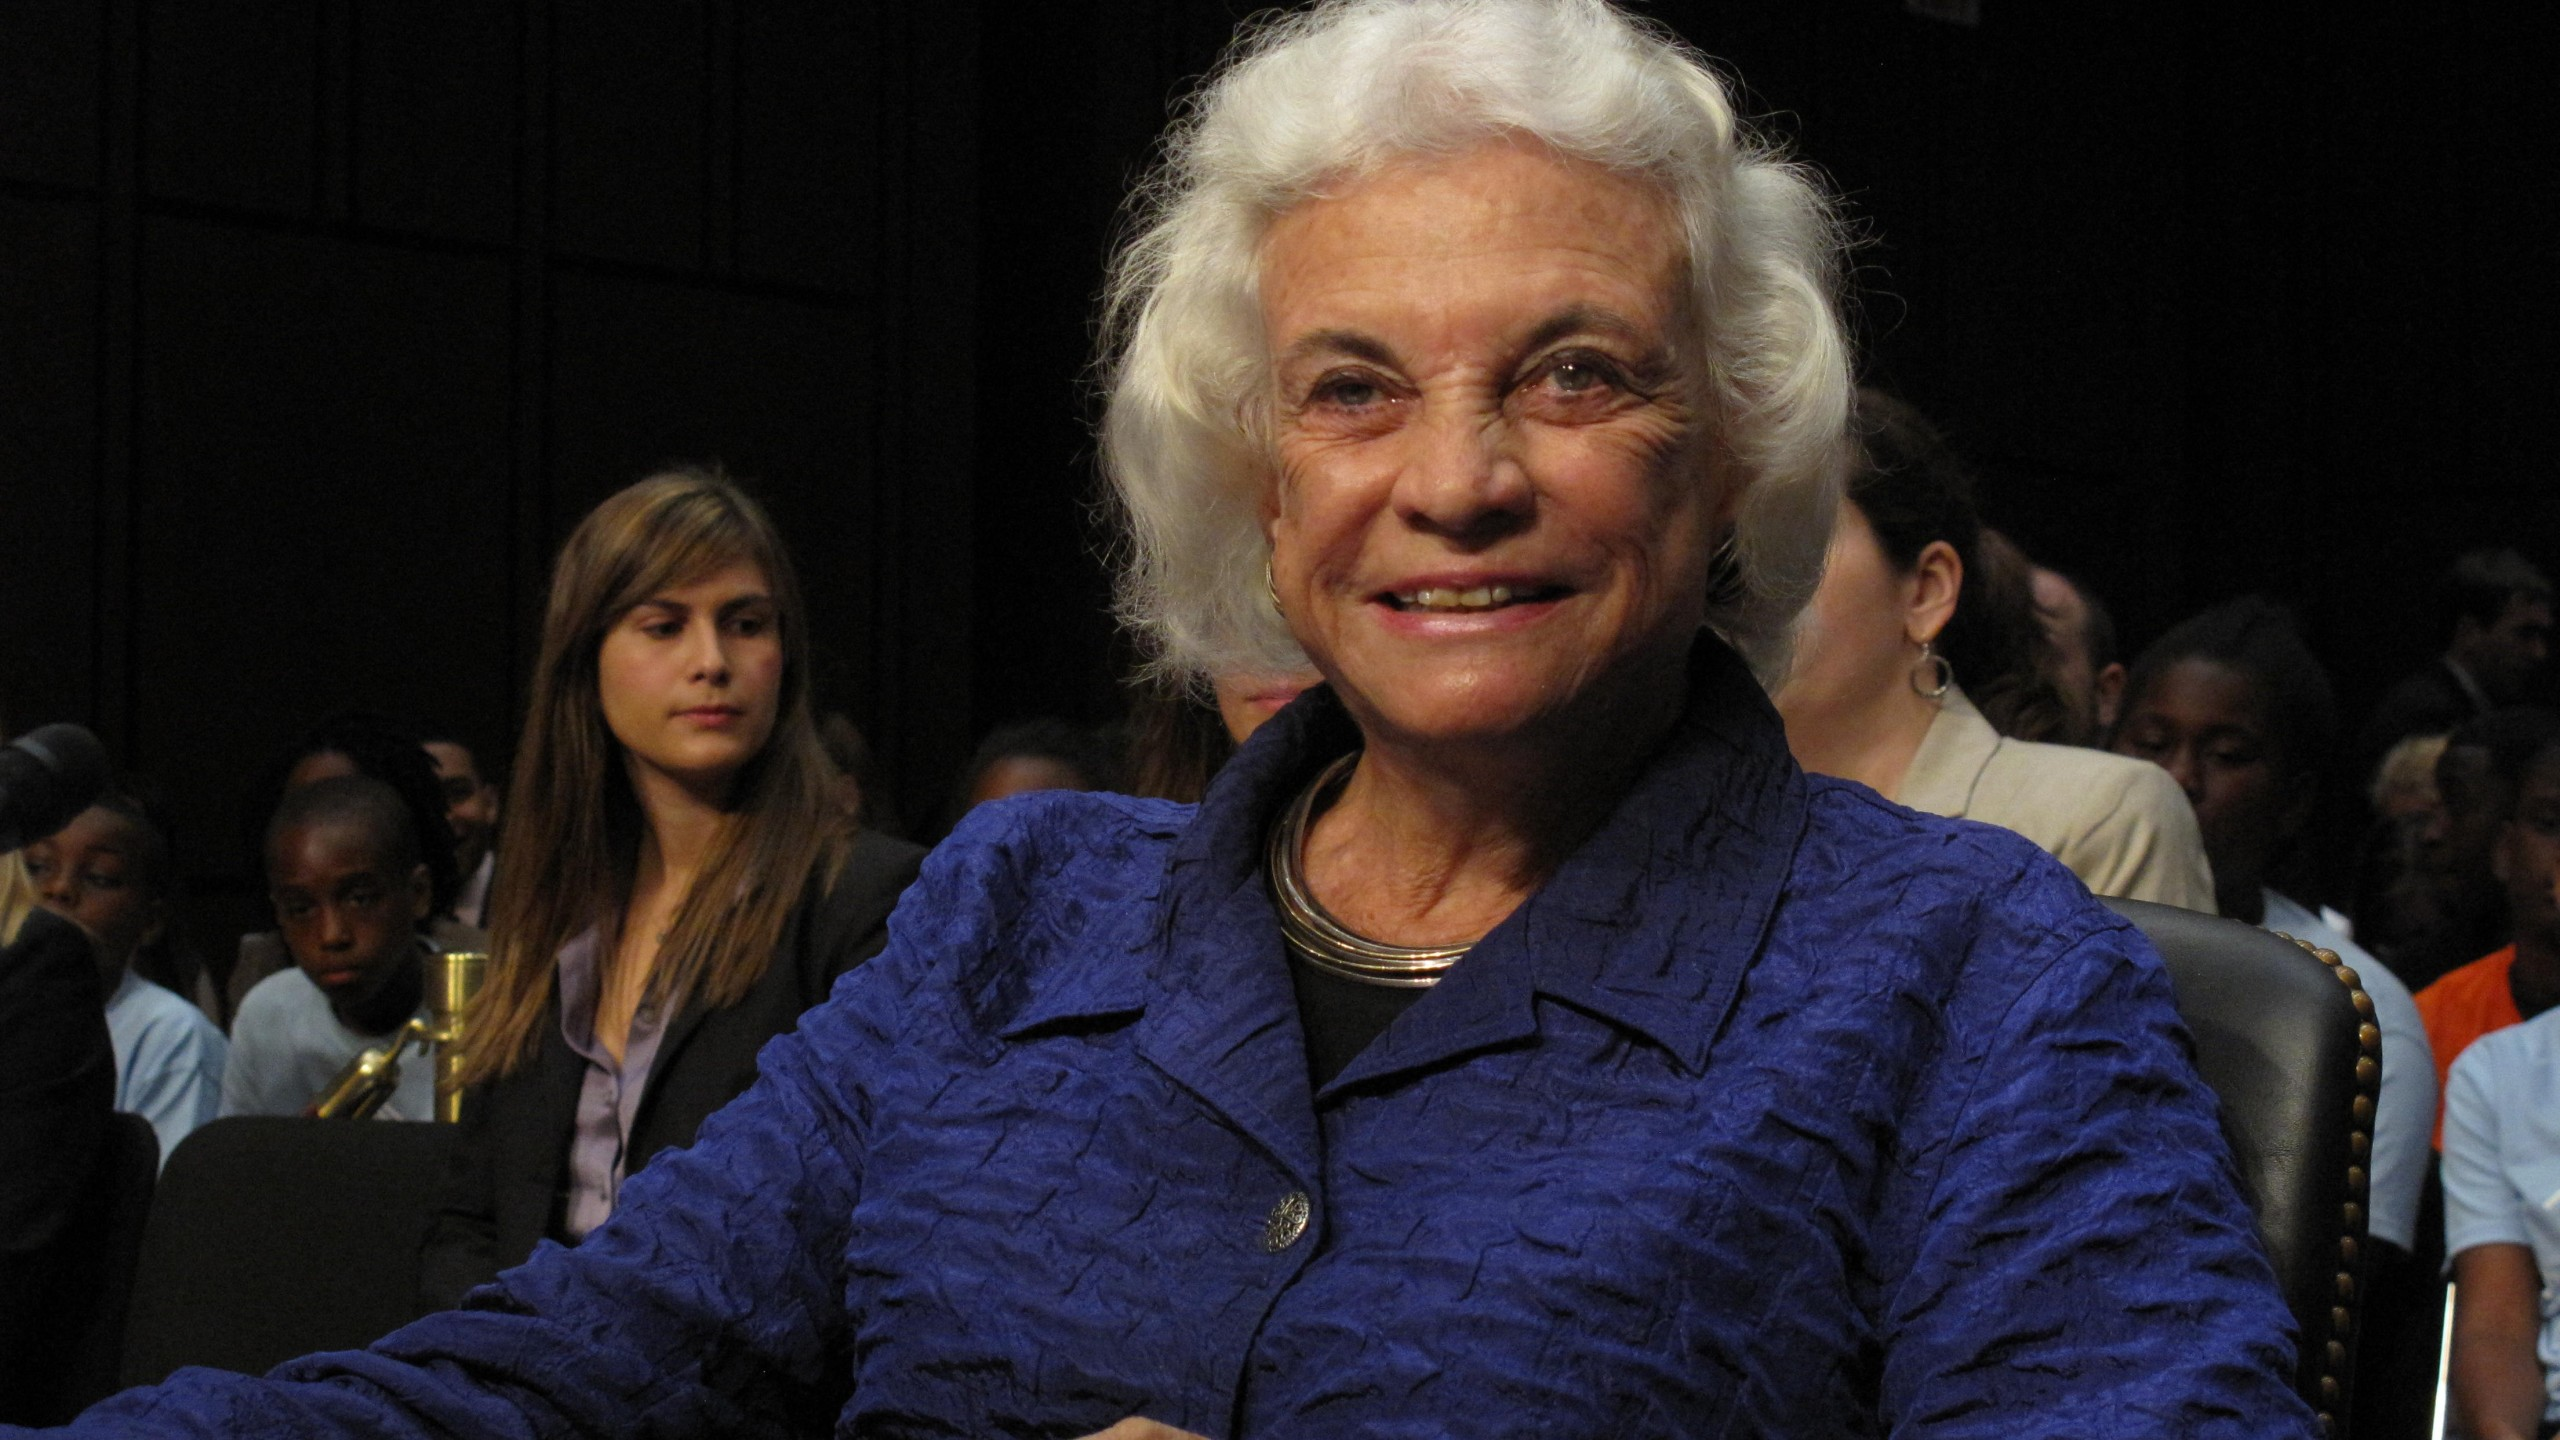 Retired Supreme Court Justice Sandra Day O'Connor testifies on Capitol Hill recently. (Credit: CNN)